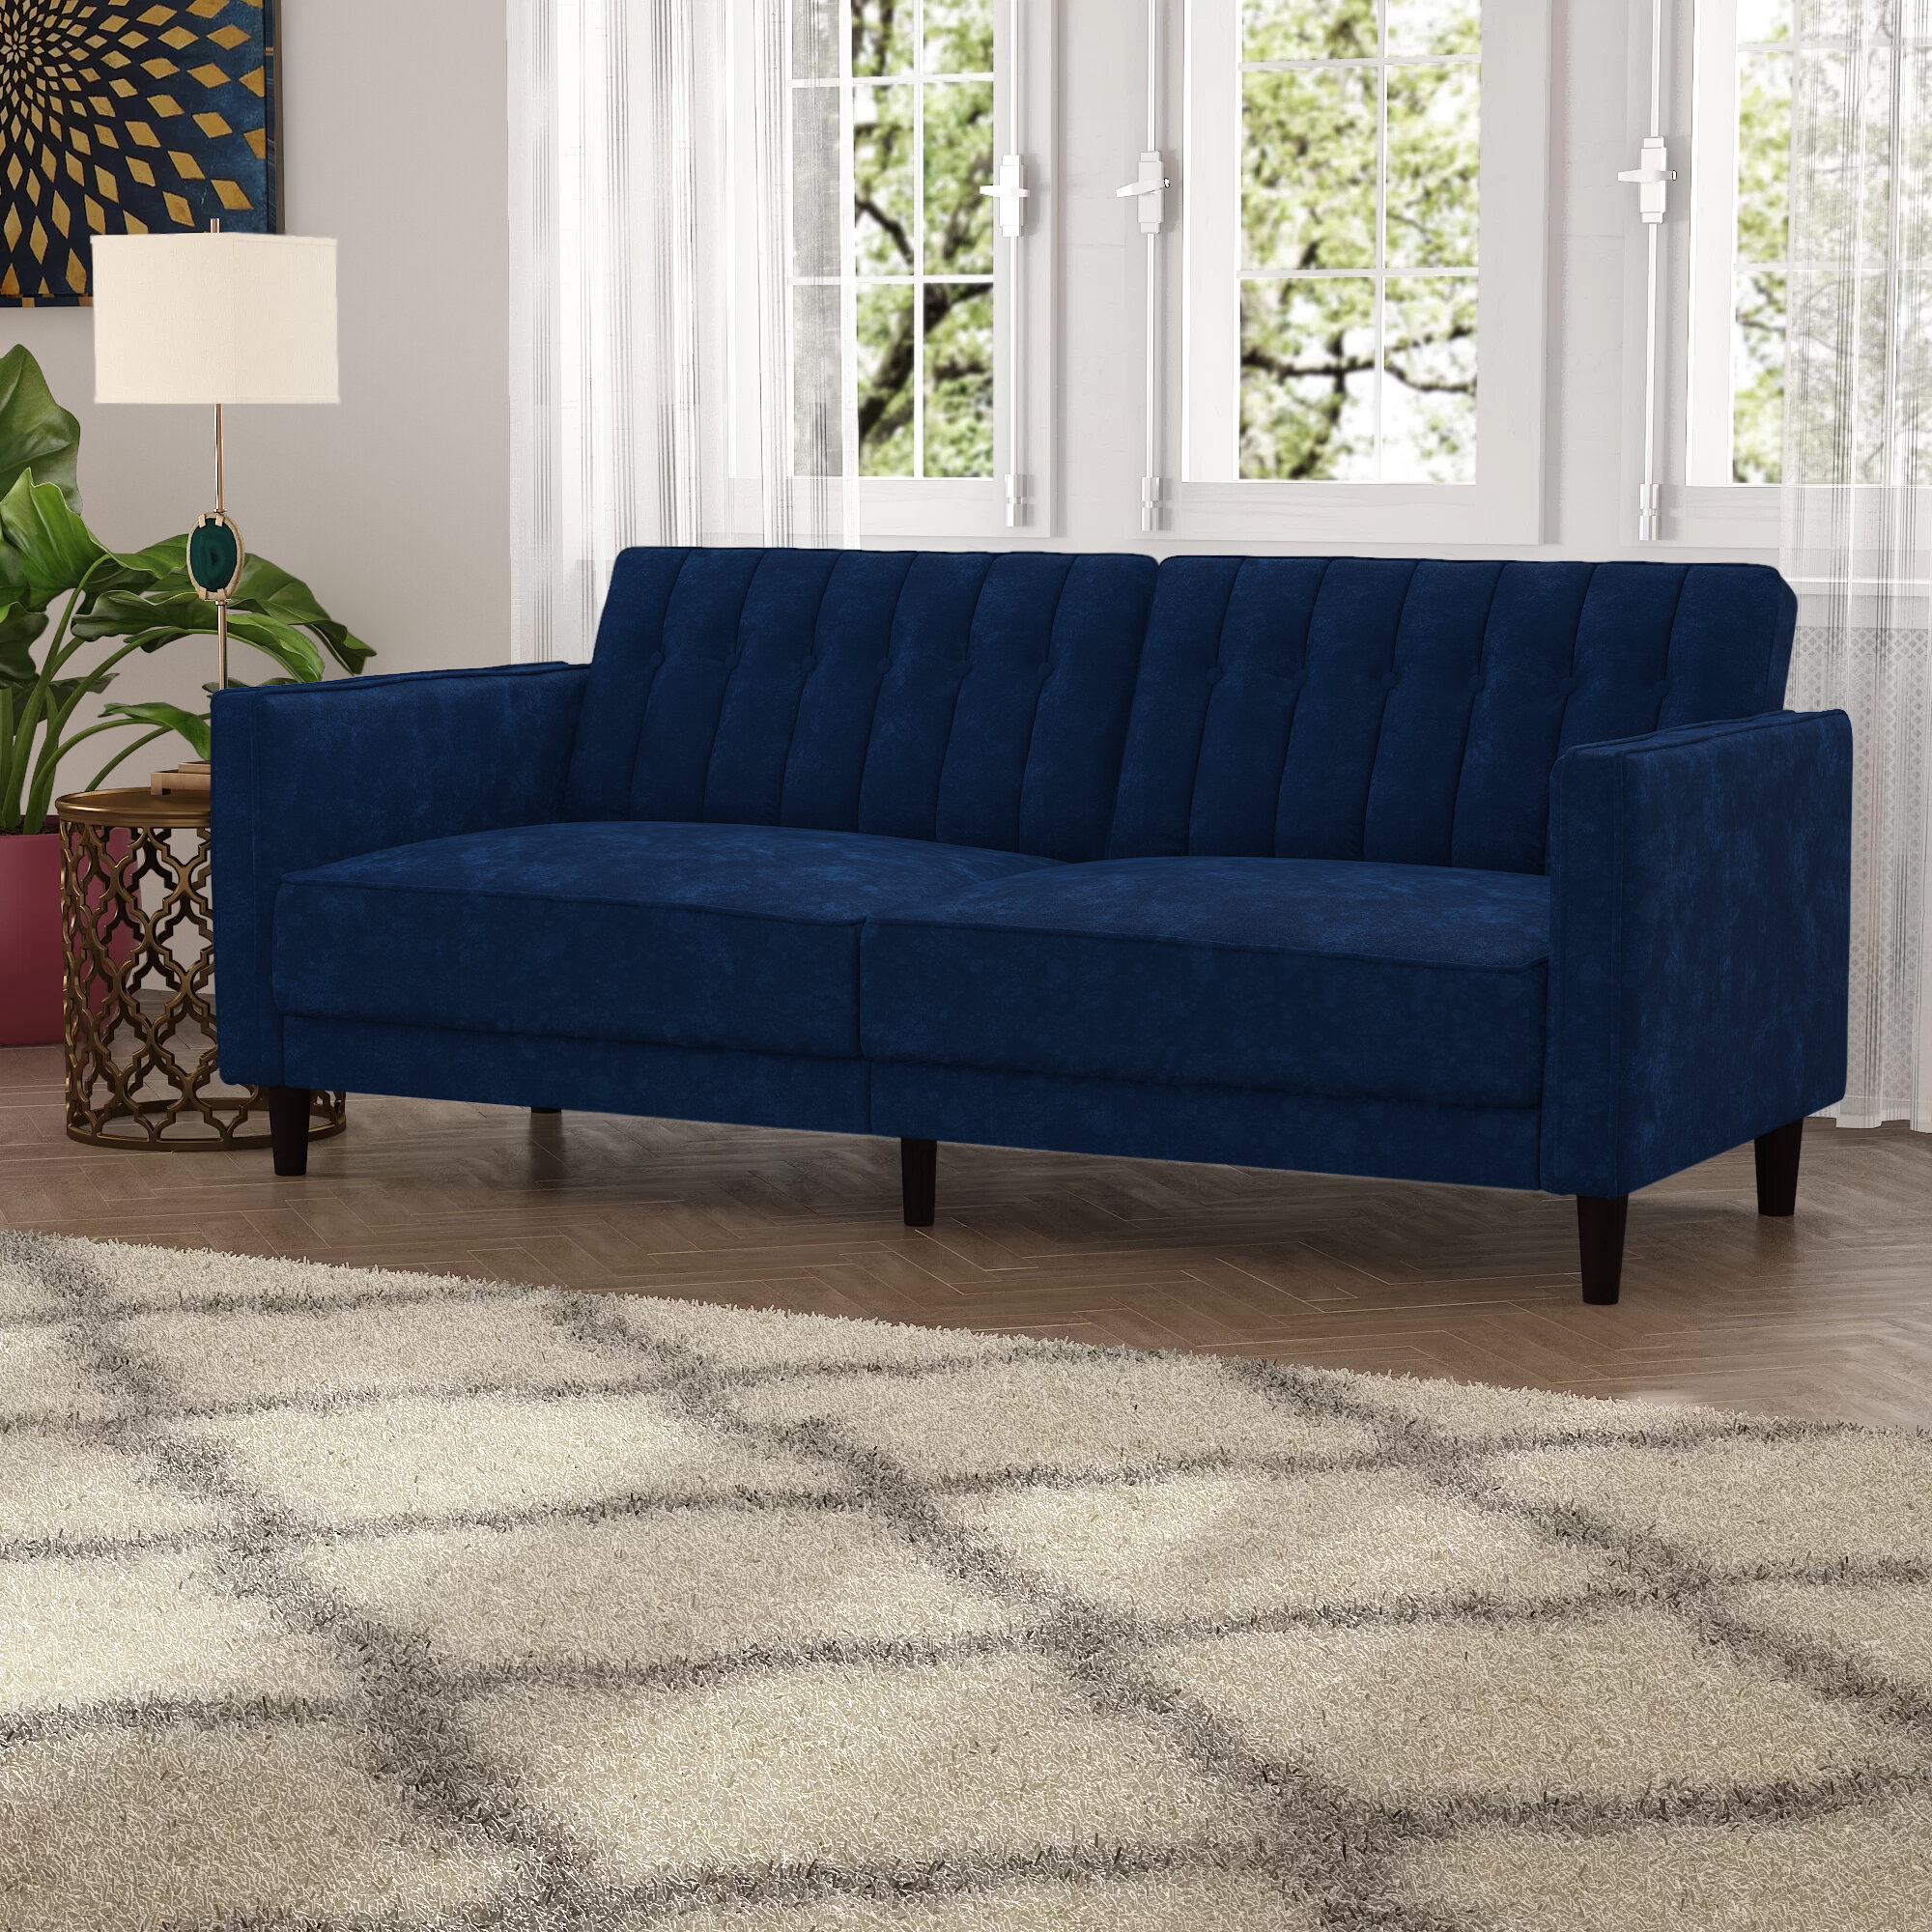 Stupendous Sleeper Sofas Youll Love In 2019 Wayfair Download Free Architecture Designs Xerocsunscenecom